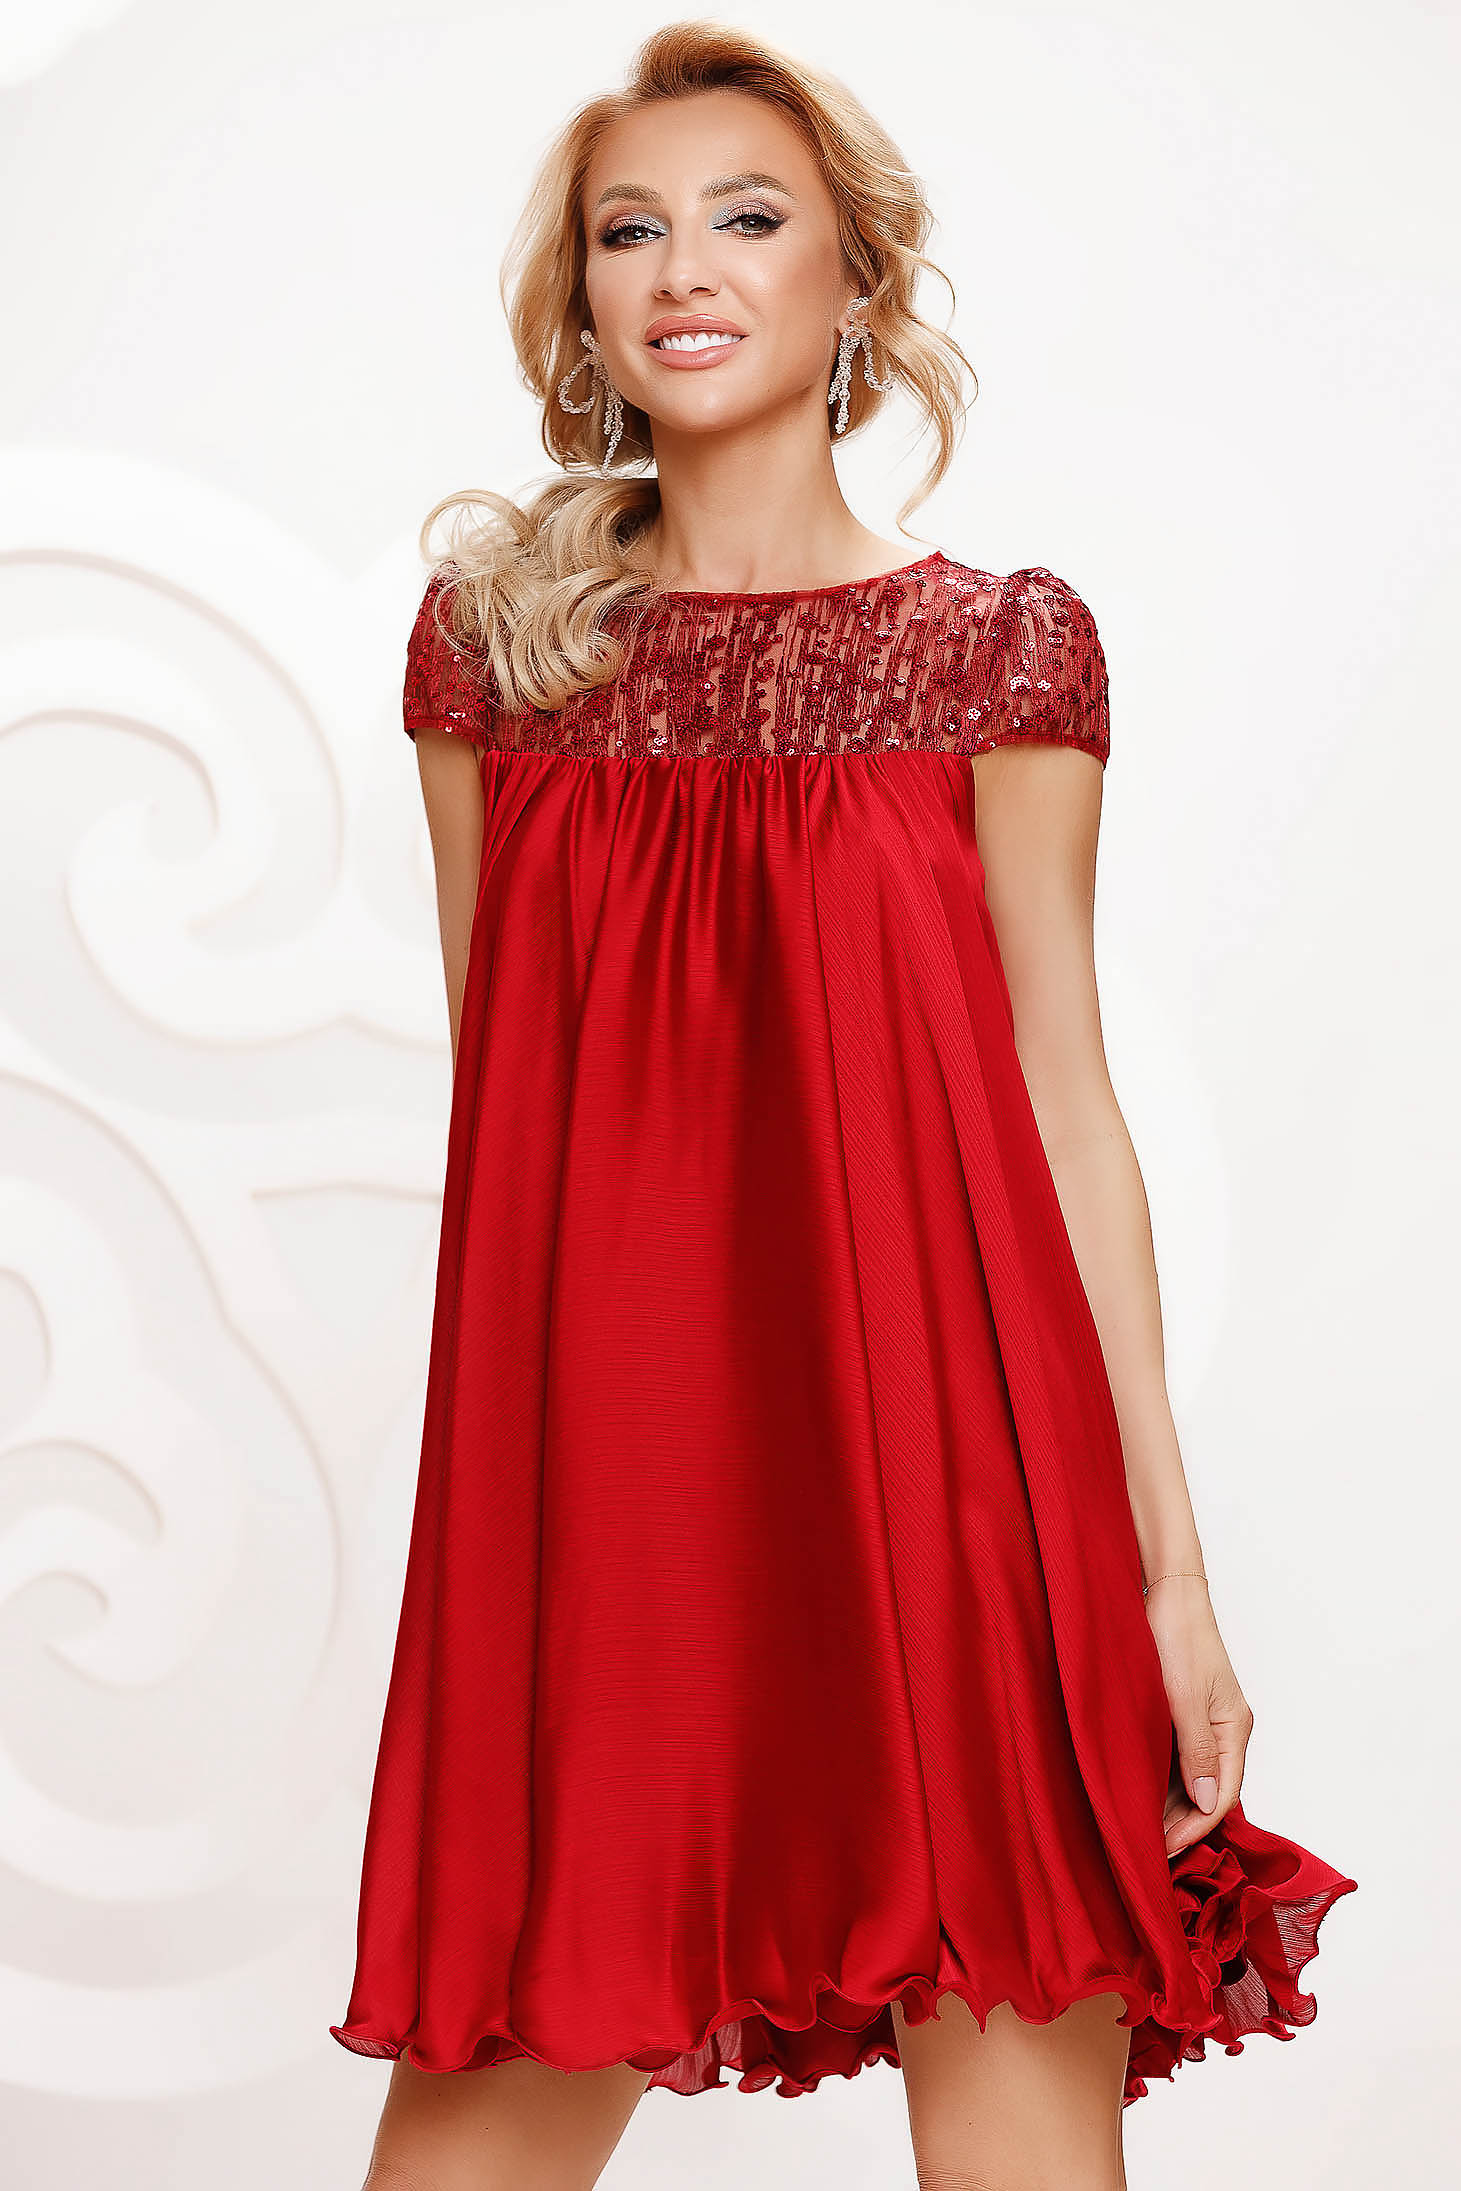 Burgundy dress from veil fabric occasional with lace details with crystal embellished details loose fit